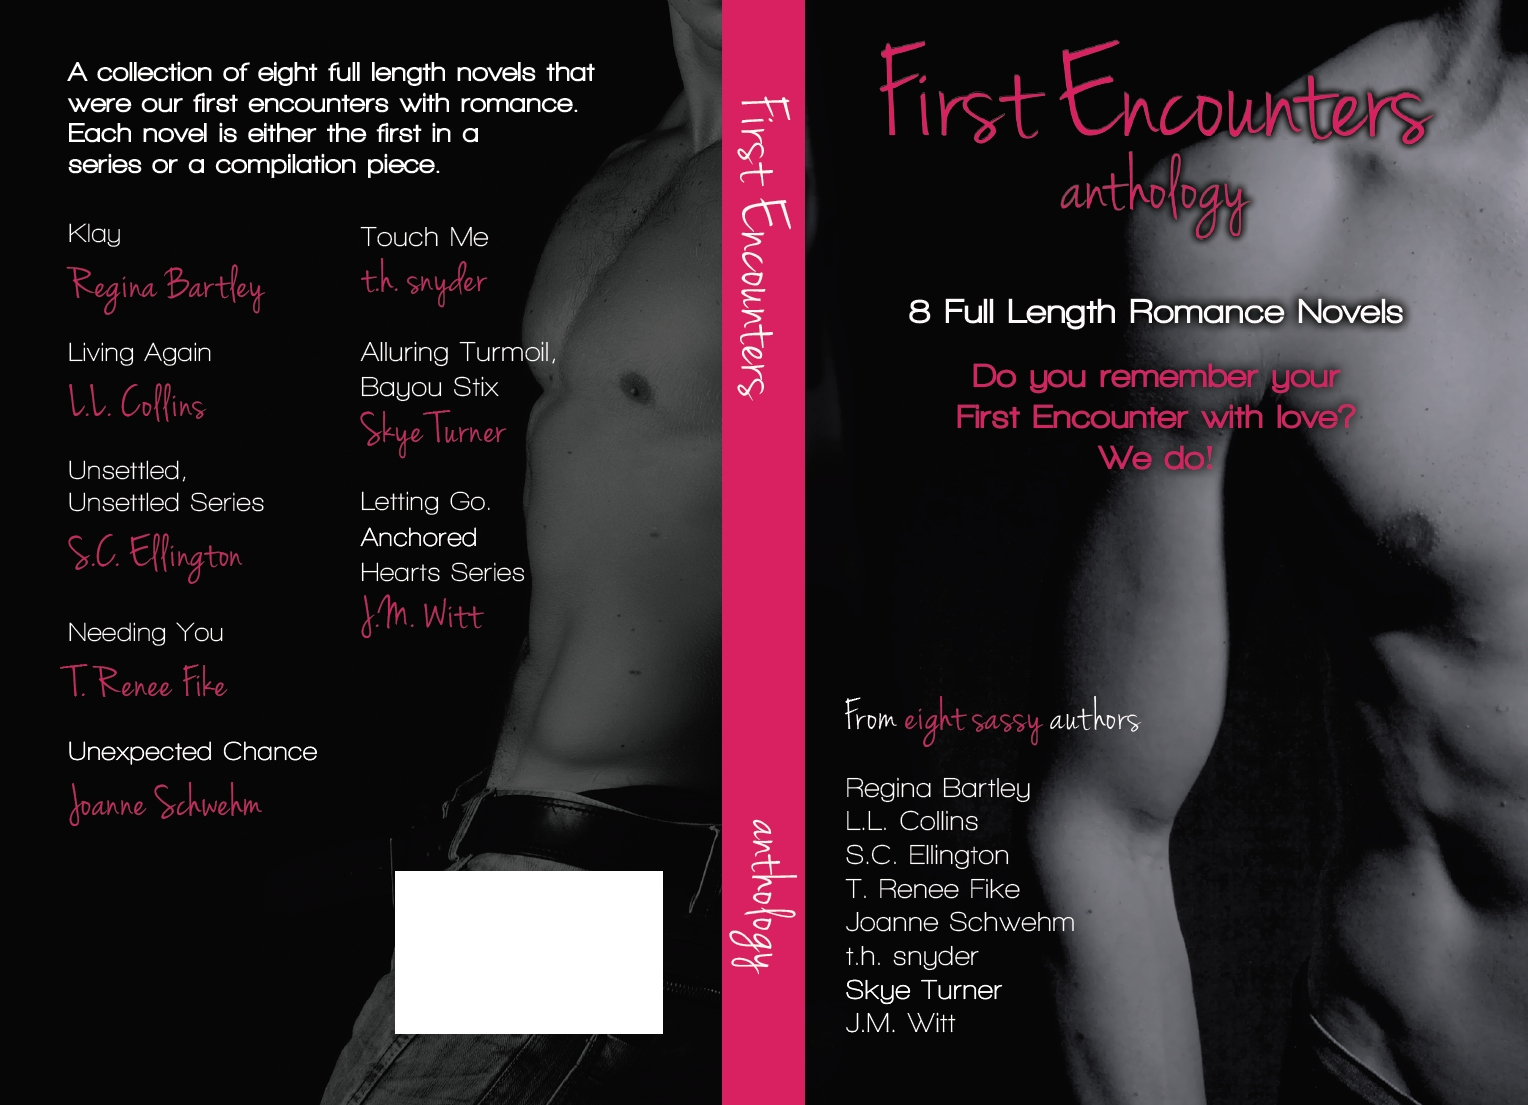 FIRST ENCOUNTERS ANTHOLOGY